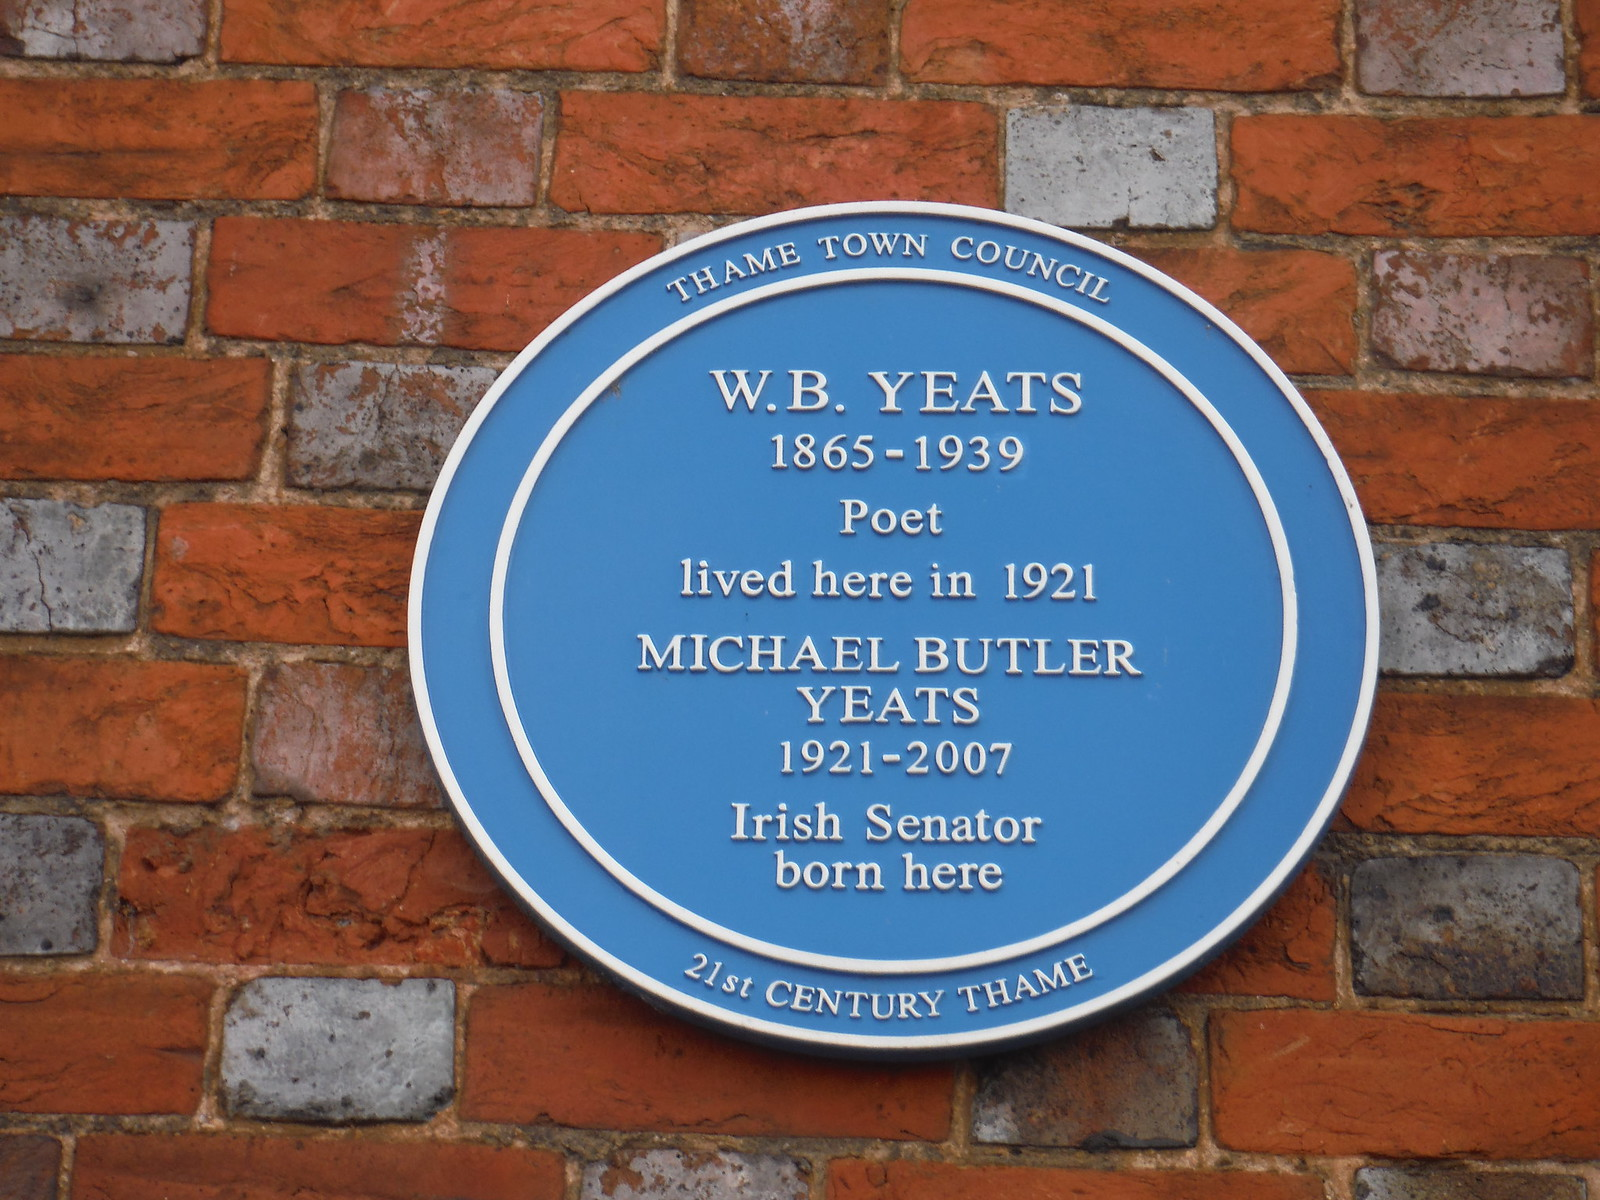 Memorial Plaque for W.B. Yeats, Thame SWC Walk 190 - Thame Circular